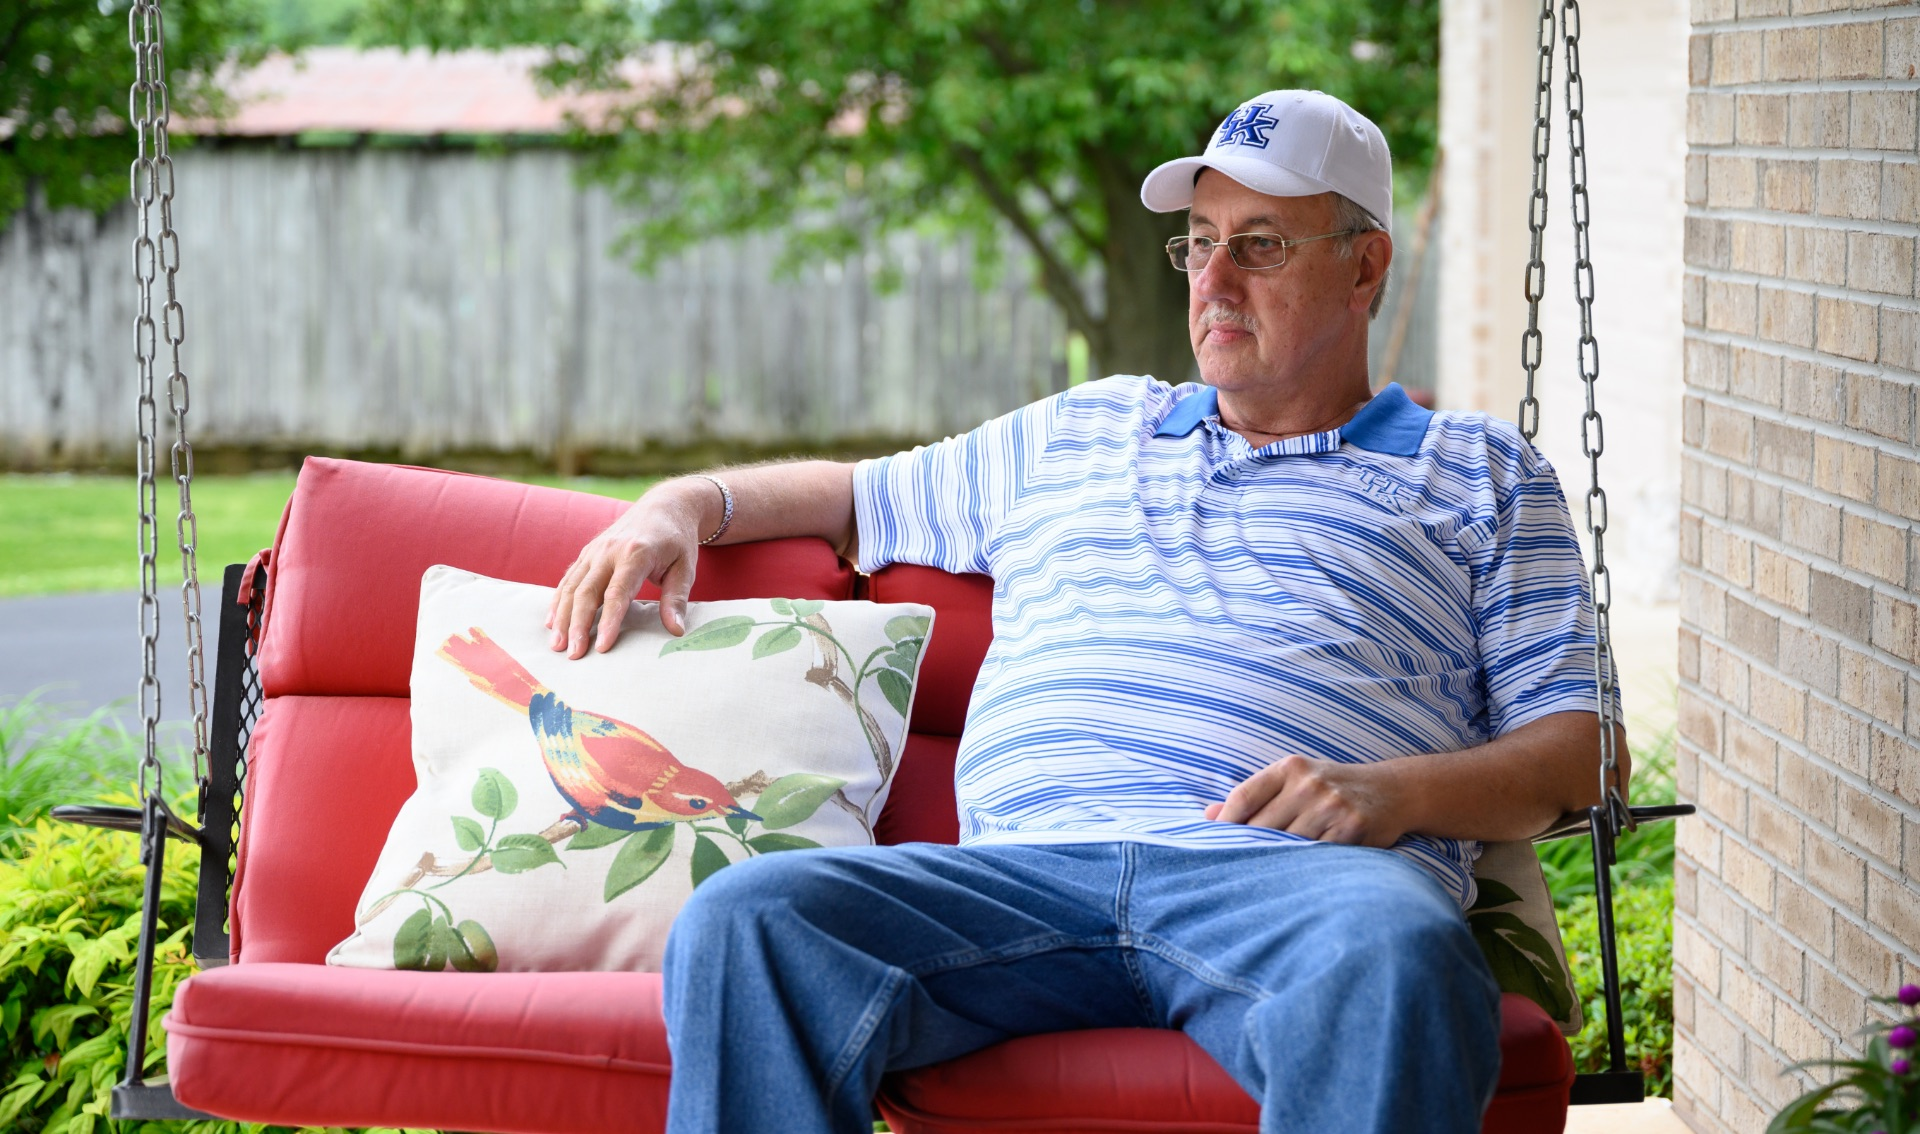 Danny sits out on the porch in a blue and white striped shirt with a white and blue UK cap.